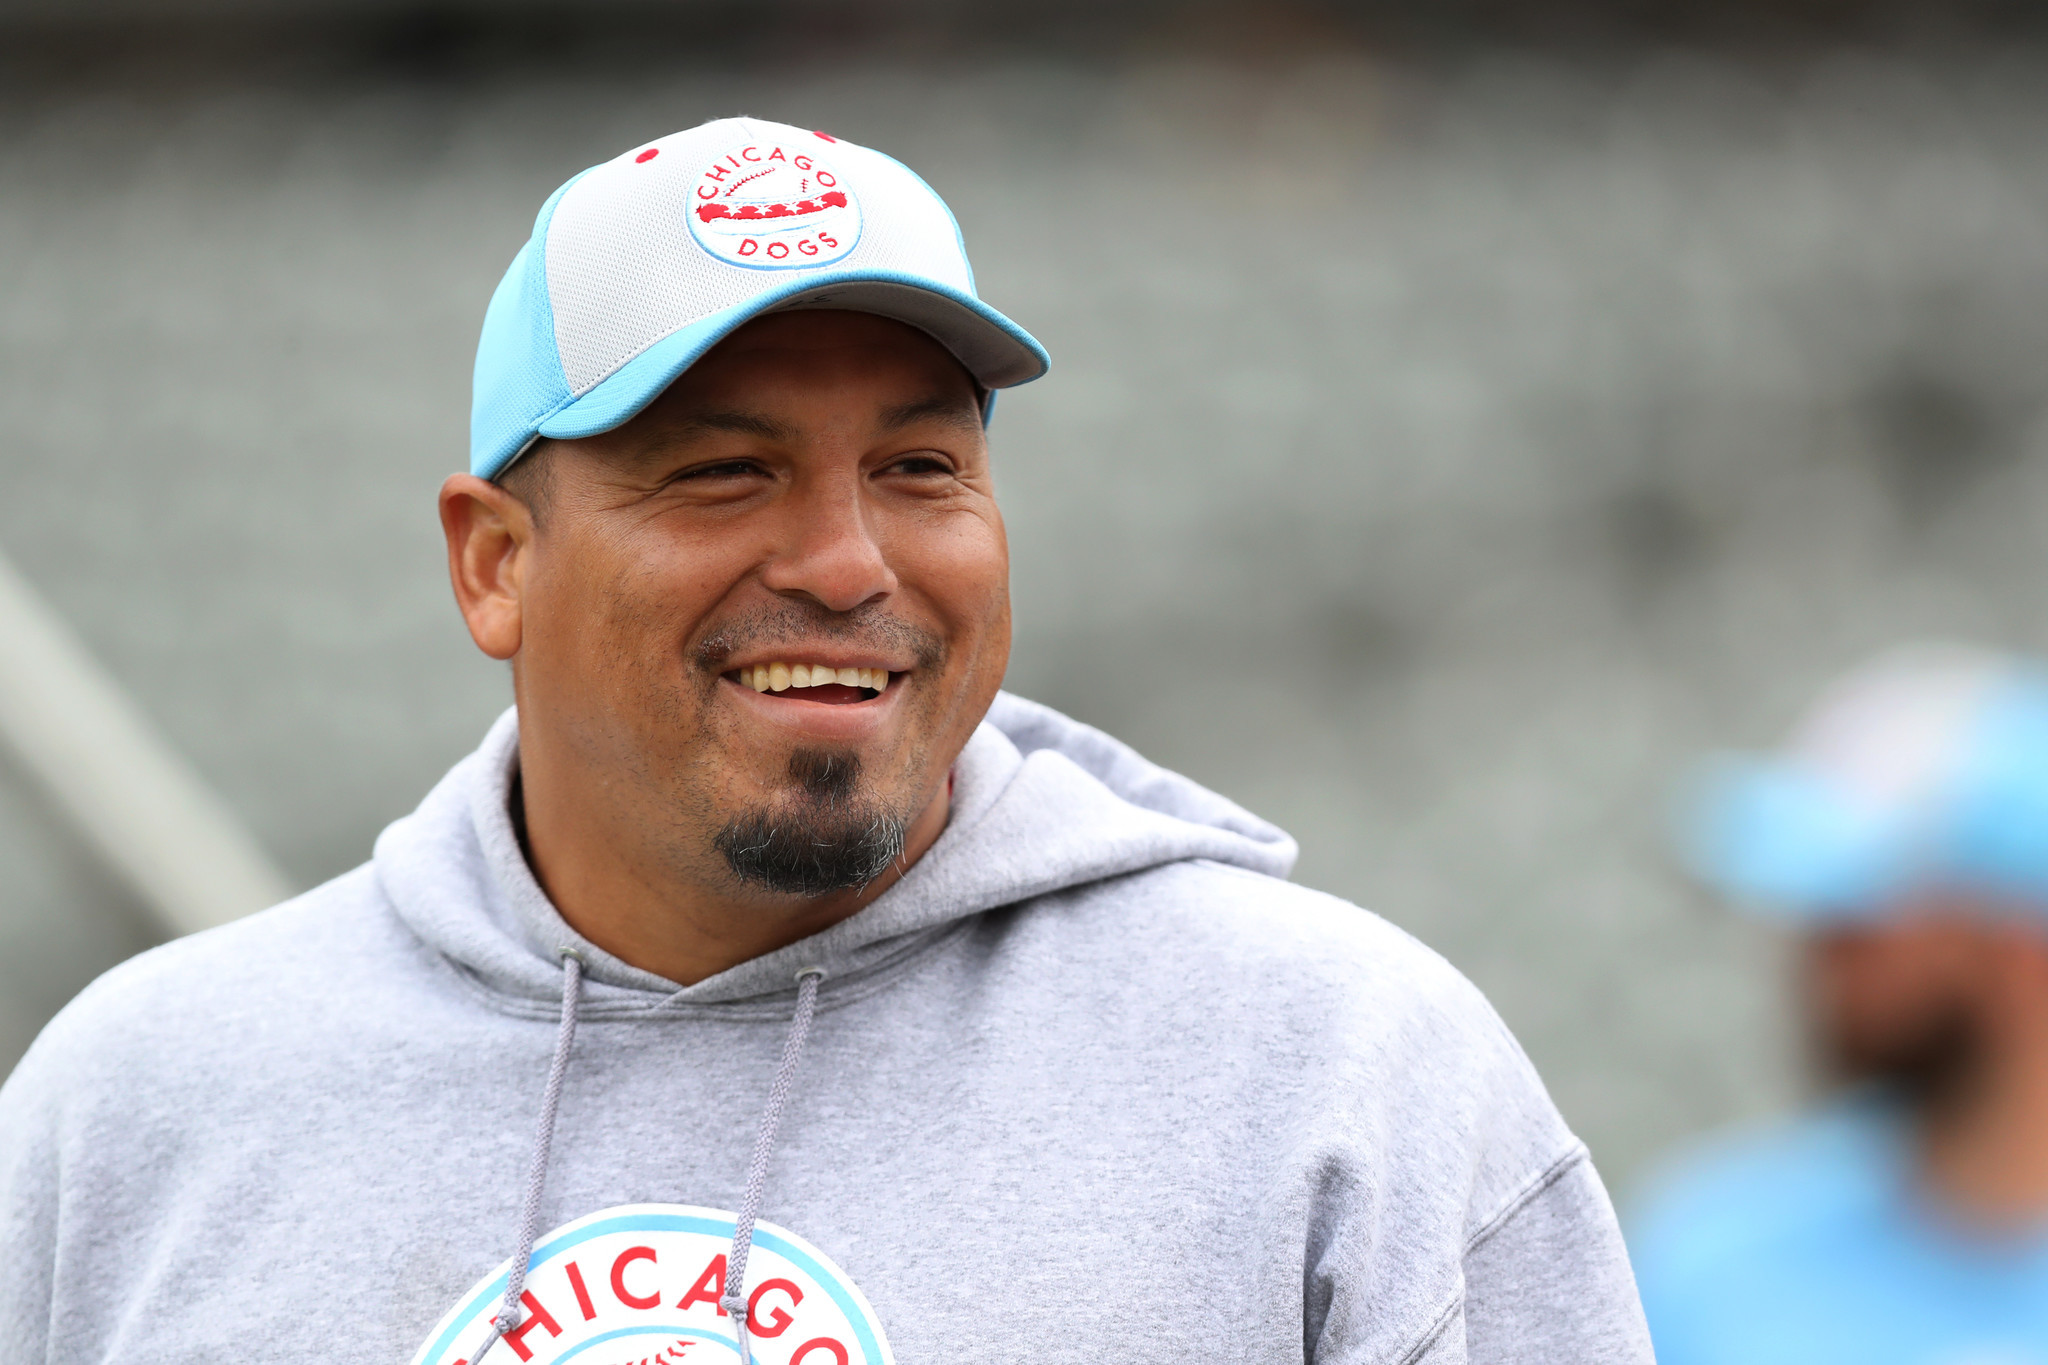 Carlos Zambrano's comeback with the Chicago Dogs: No runs, 1 hit (as a pitcher and as a hitter) and lots of rain